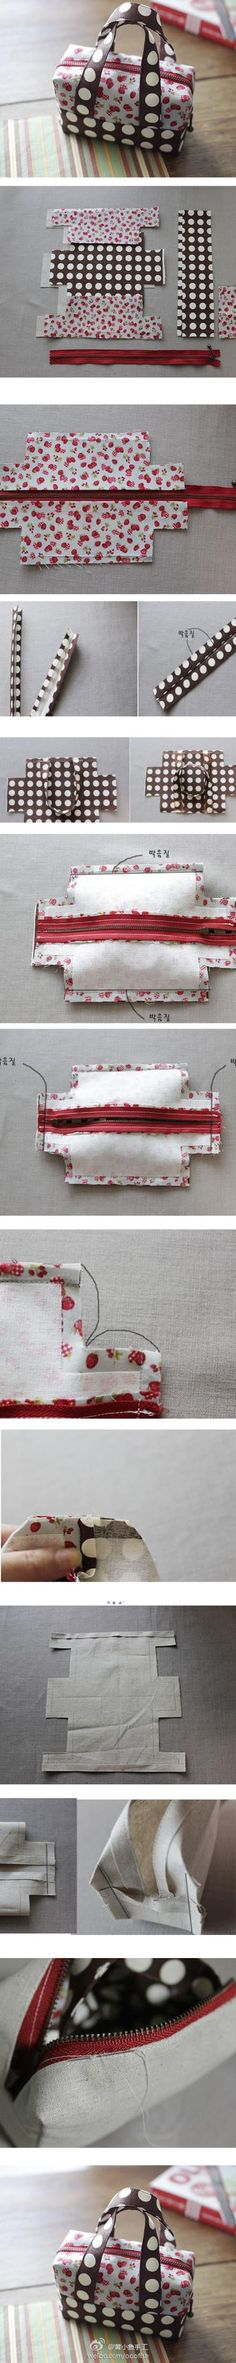 """Cute DIY Bag - simple to make, very very useful in all sizes. Great for travel, makeup bags, """"in-purse"""" bags, etc."""